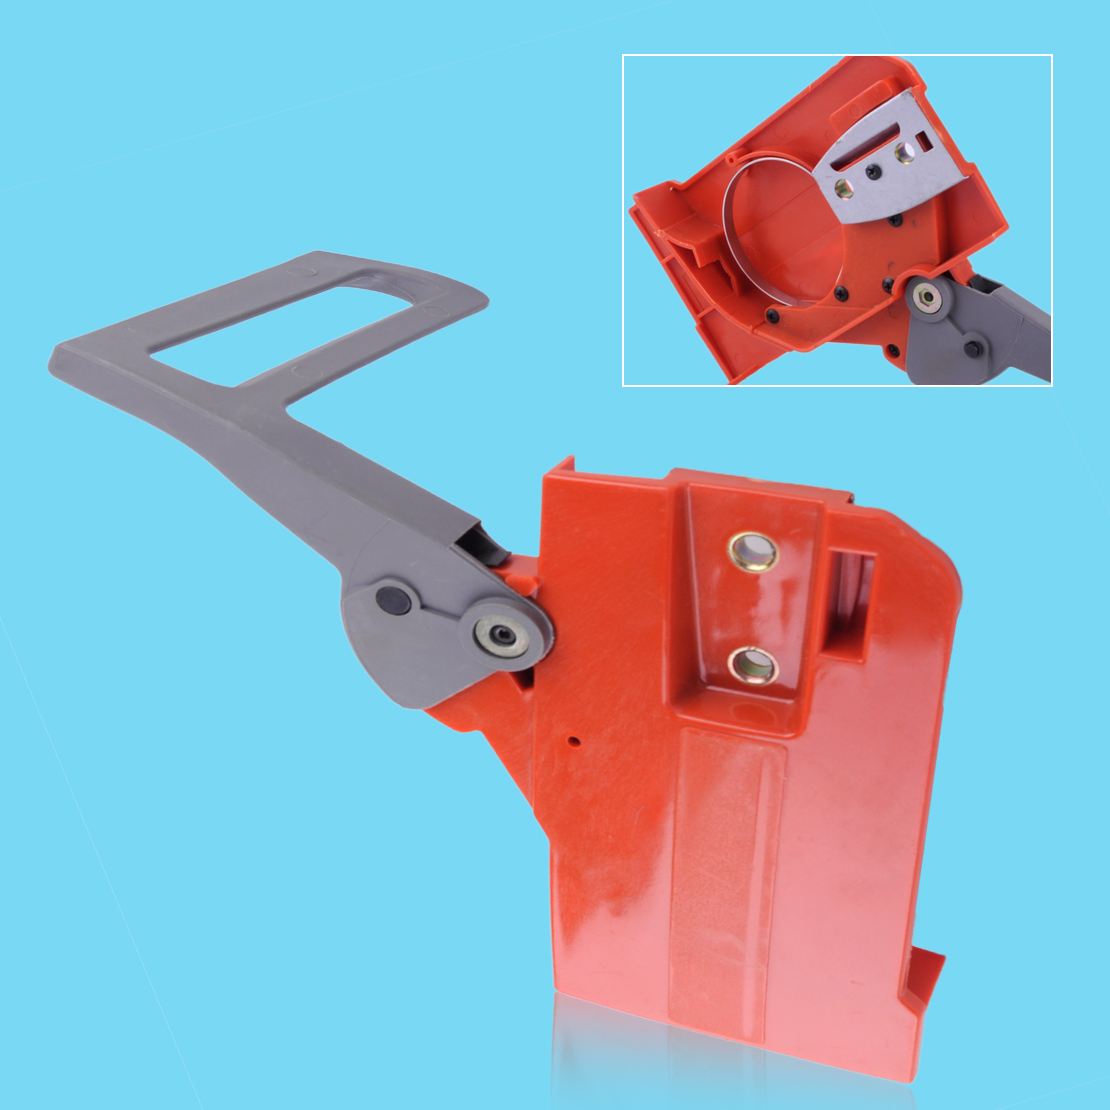 LETAOSK Plastic Chain Brake Side Cover Assembly Fit for Husqvarna 50 51 55 Chainsaws Accessories